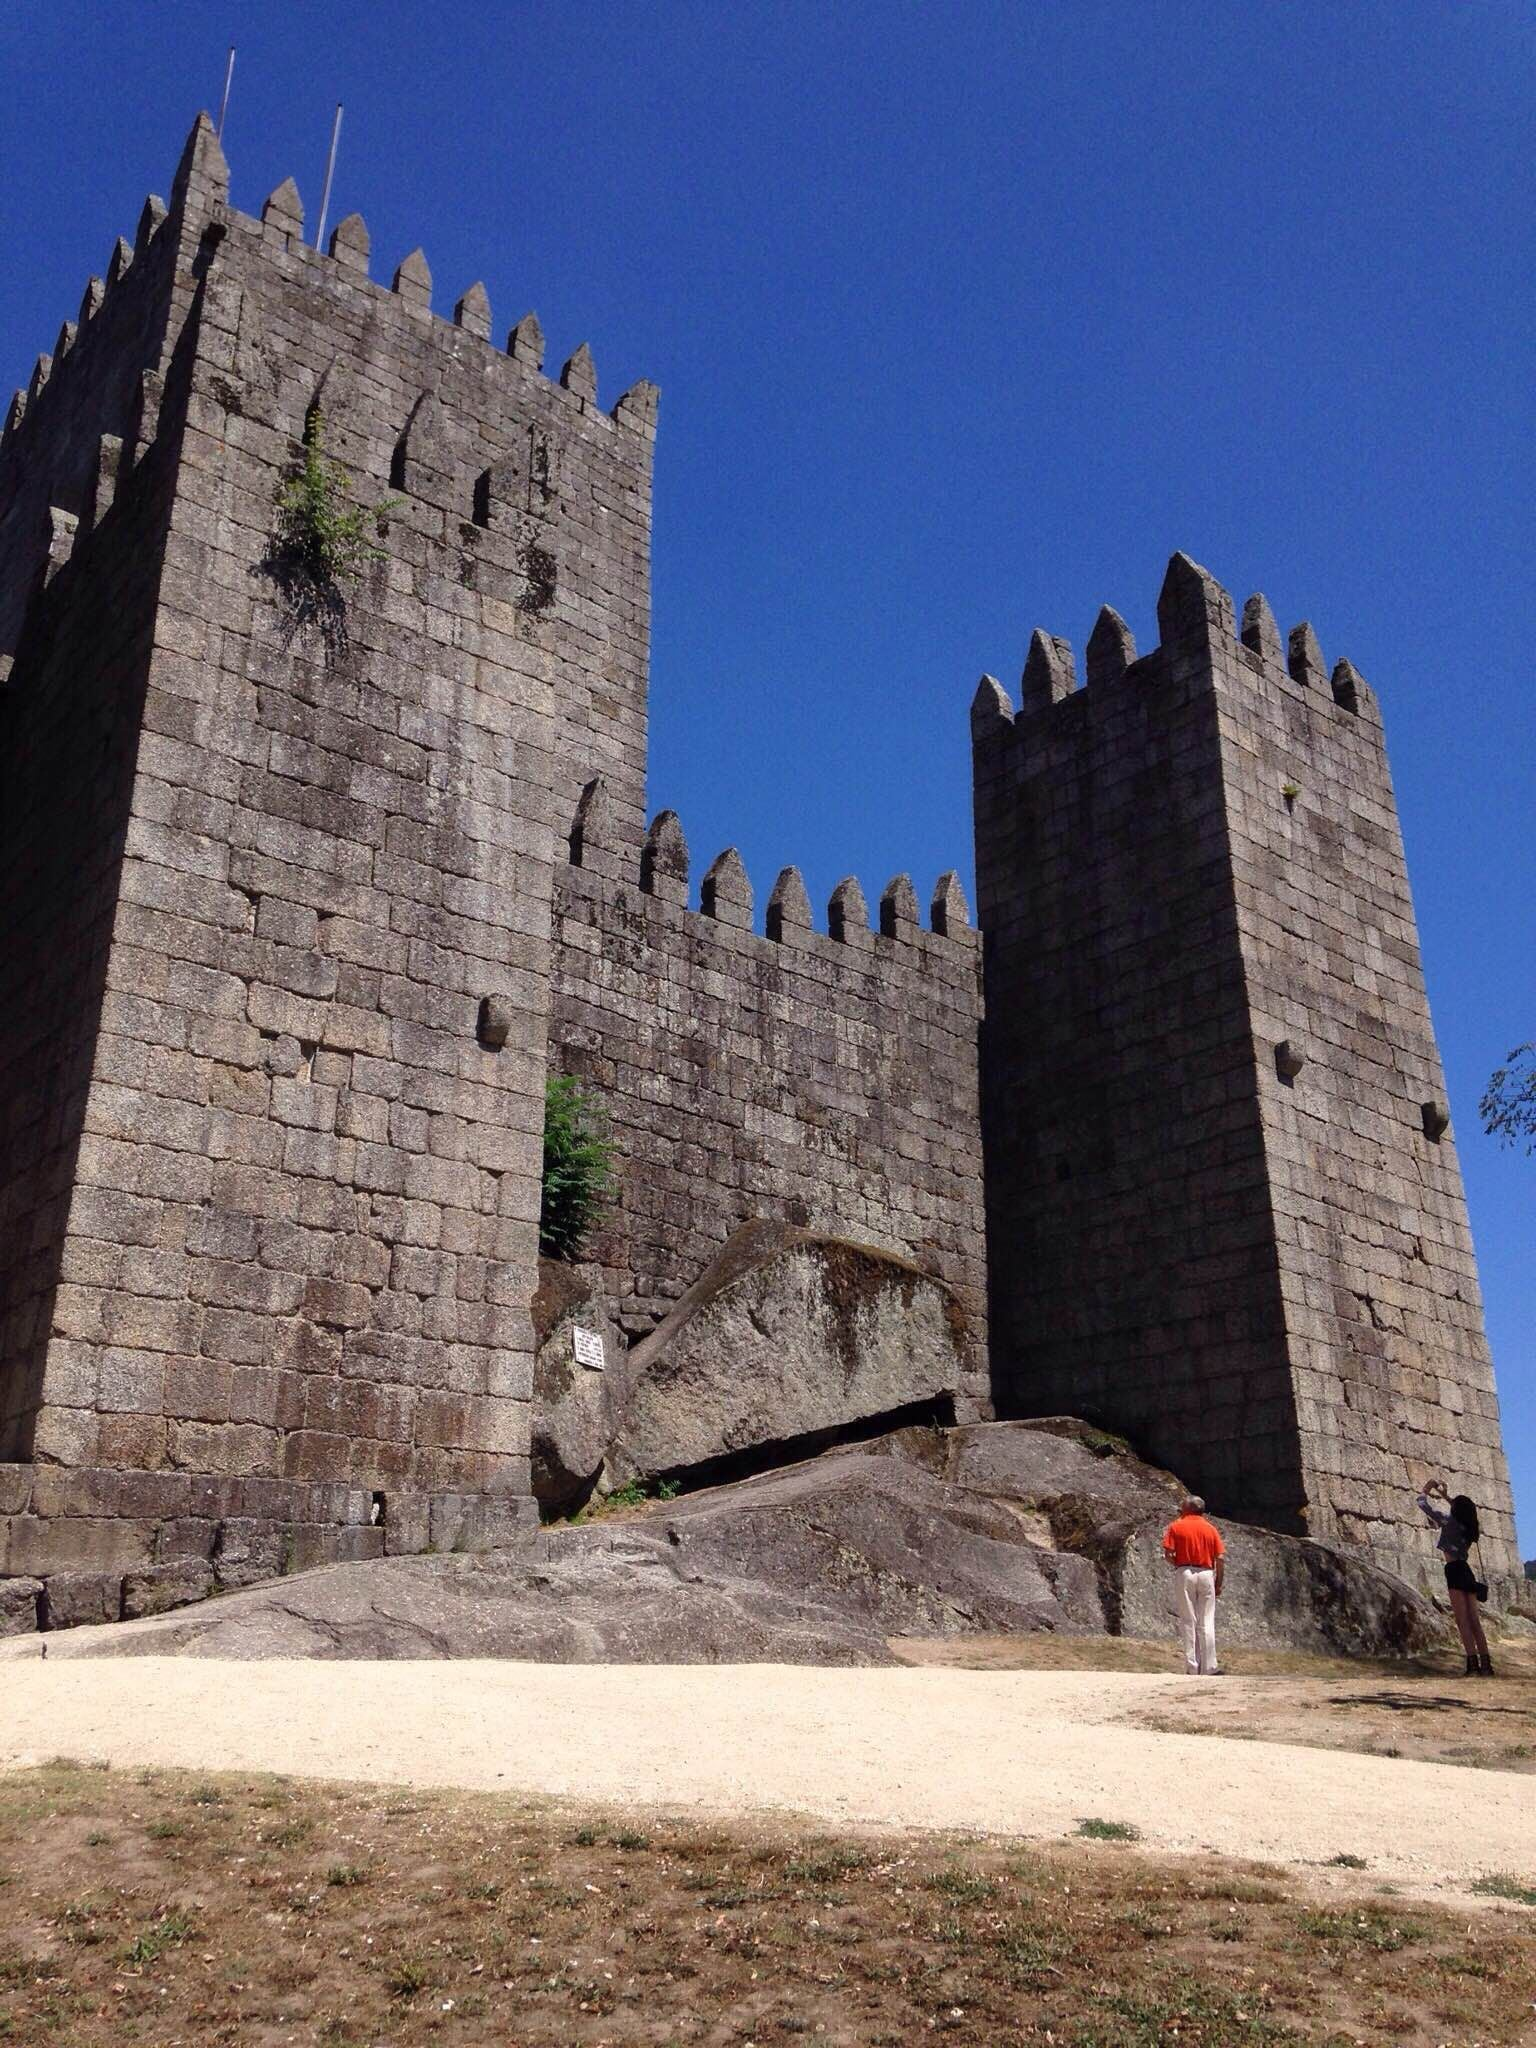 Pared en Castillo de Guimarães